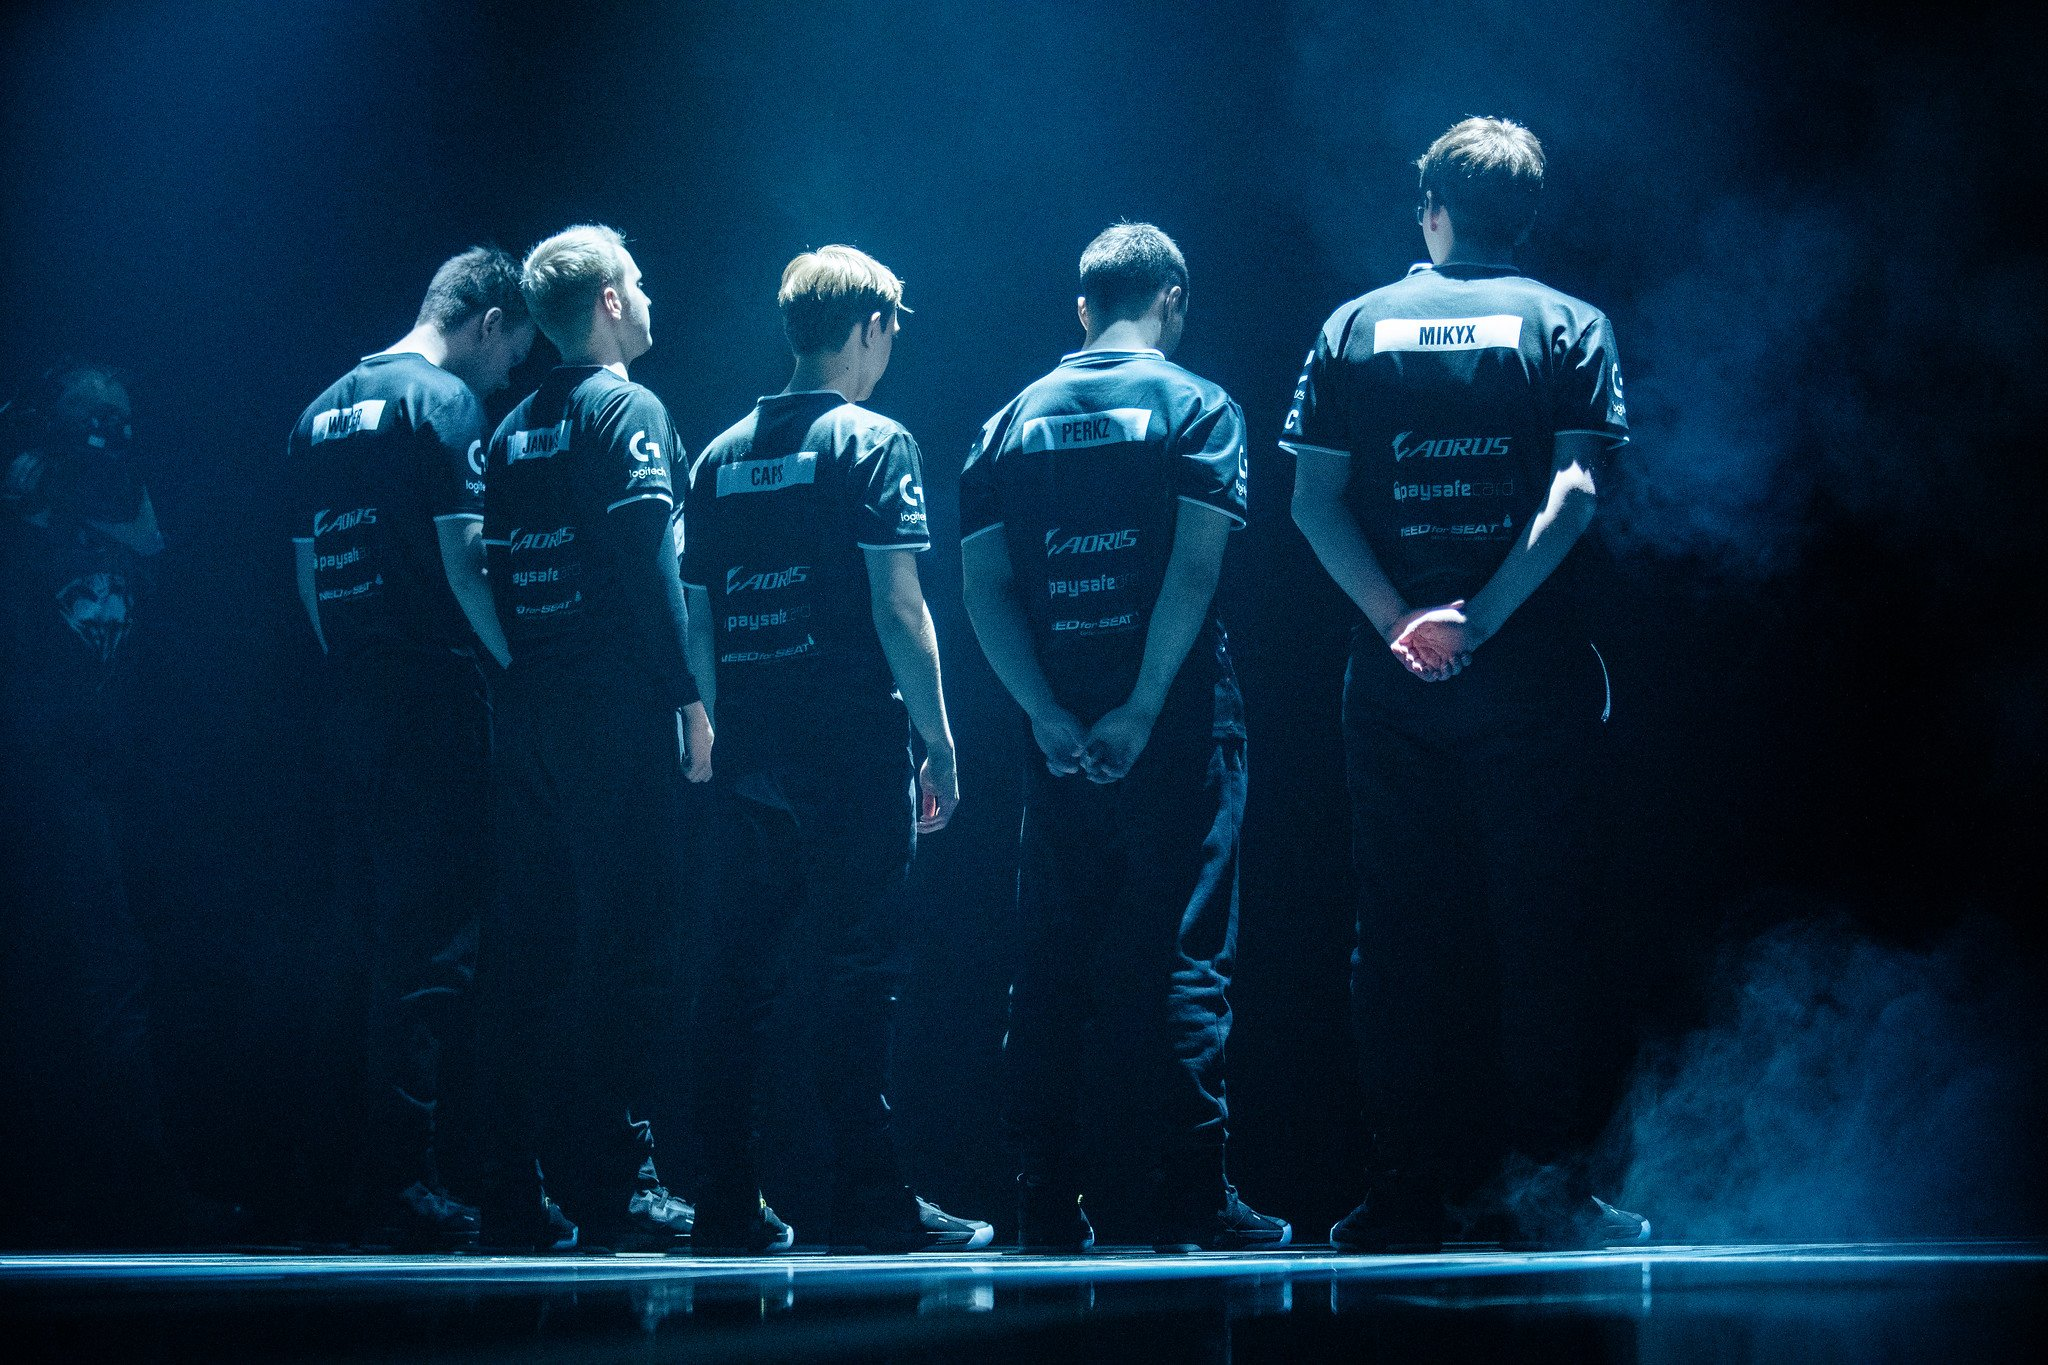 G2 are victorious after fastest finals win in EU history image